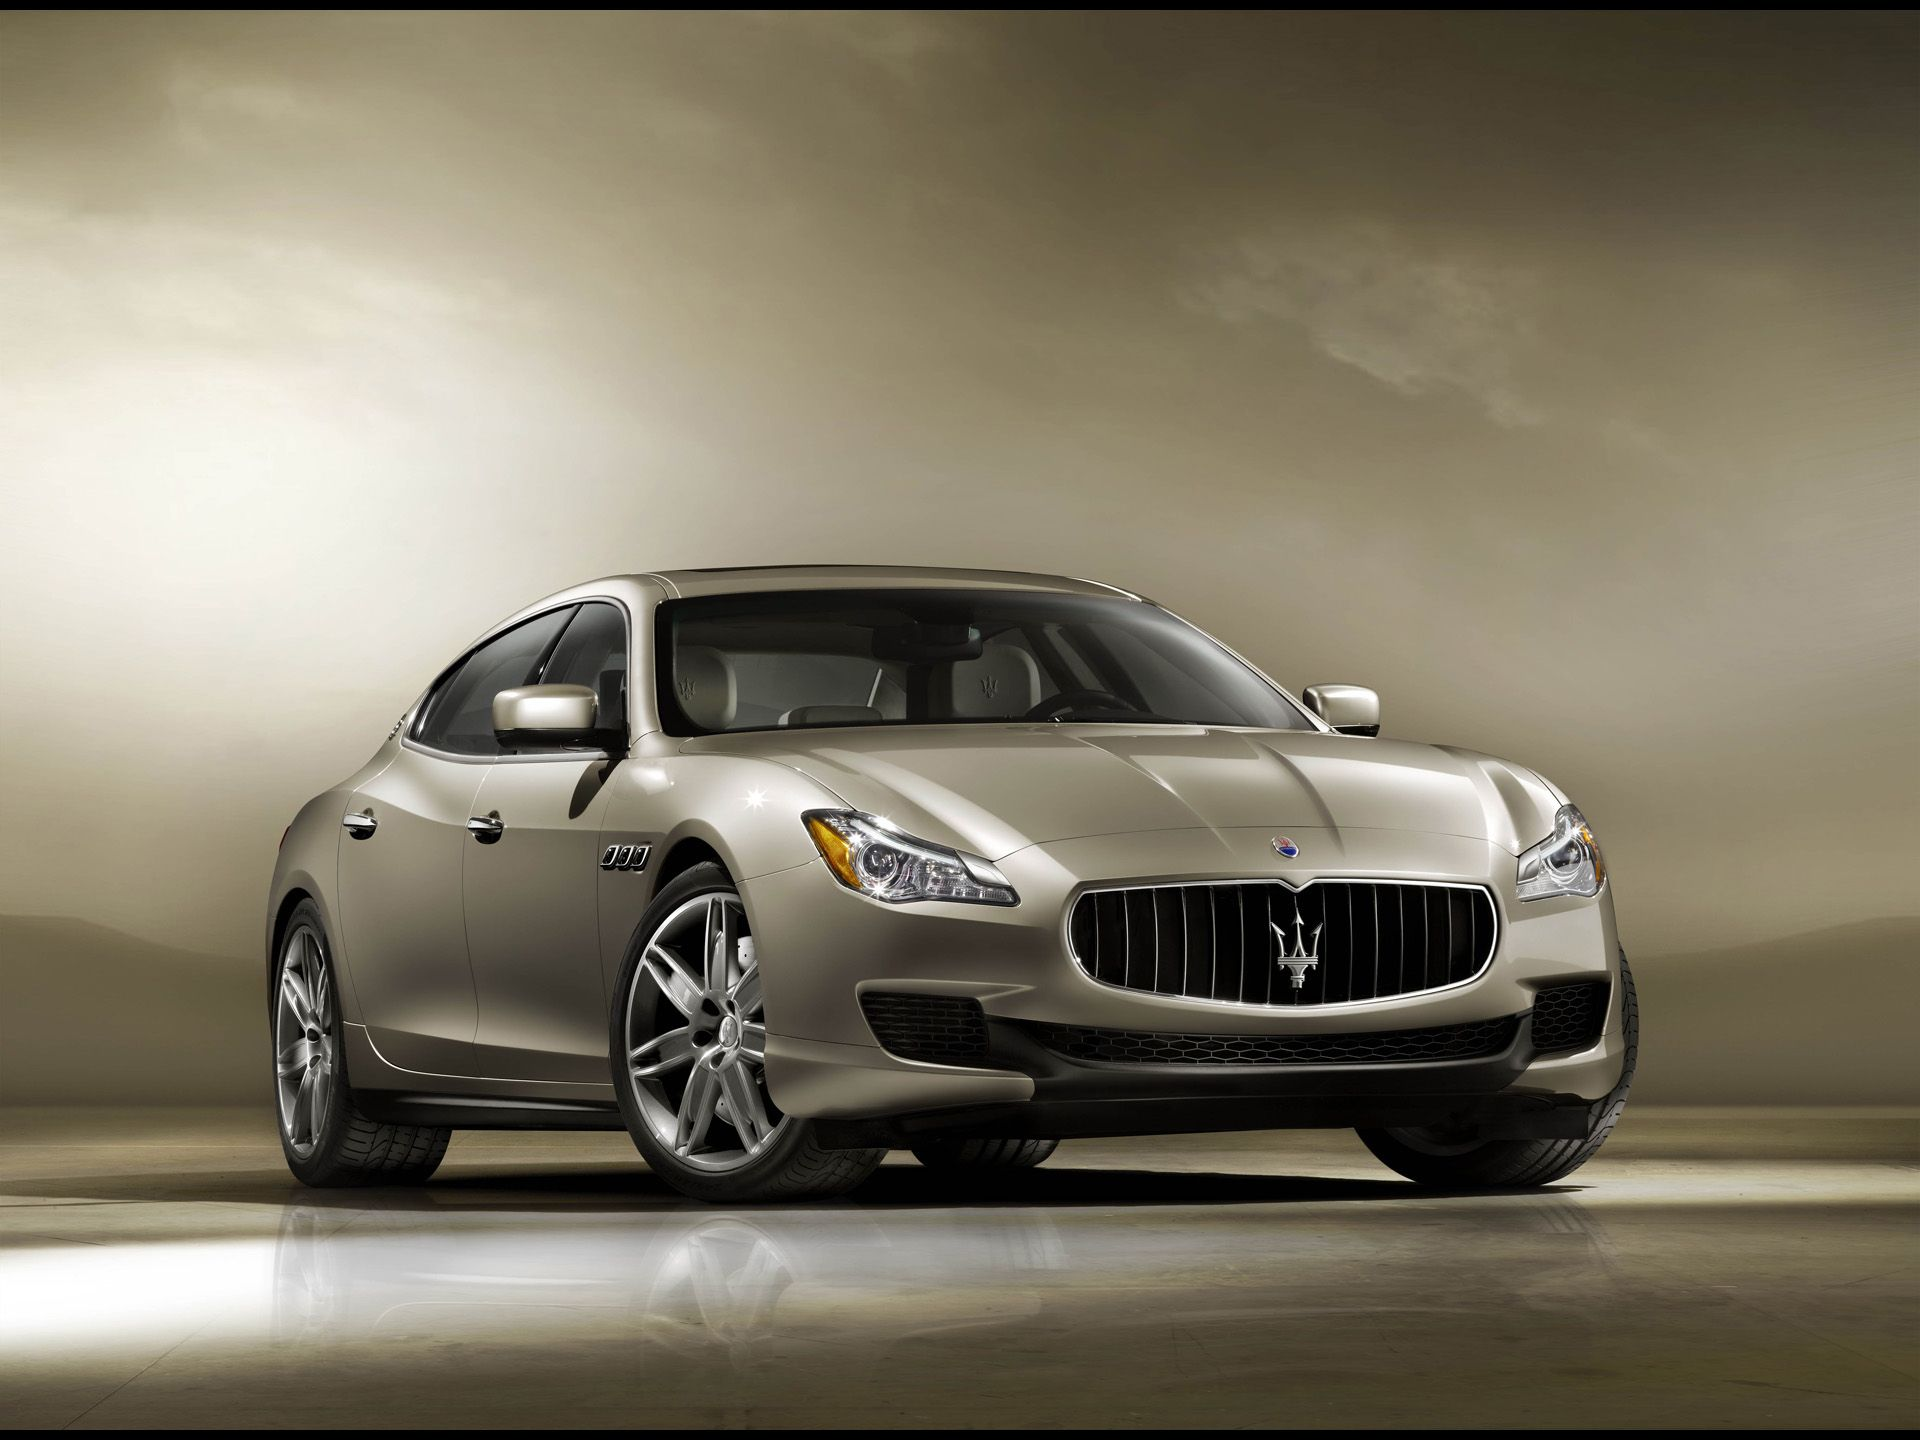 2013 Maserati Quattroporte - Static 1 - 1920x1440 - Wallpaper ...